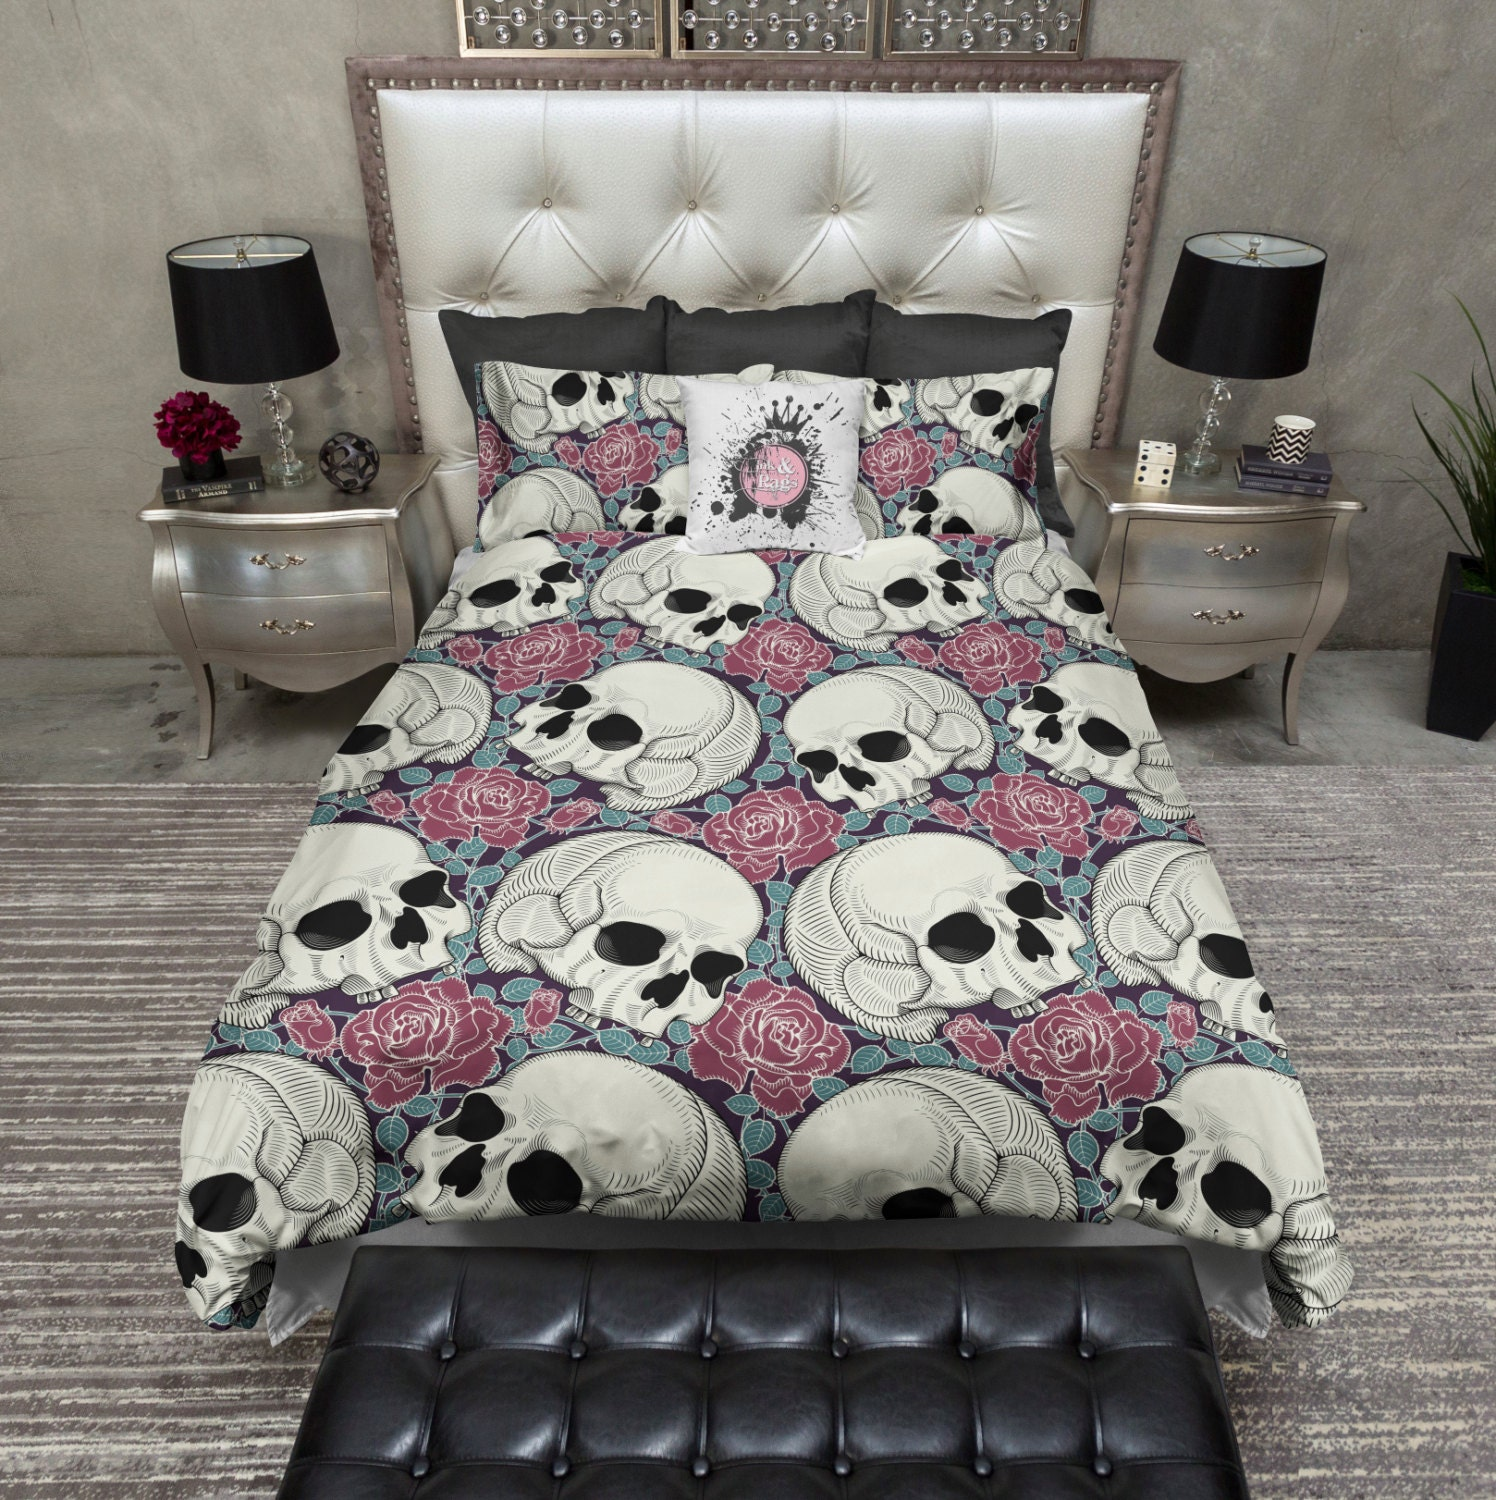 Featherweight Skull Bedding Skull and Rose Print by InkandRags